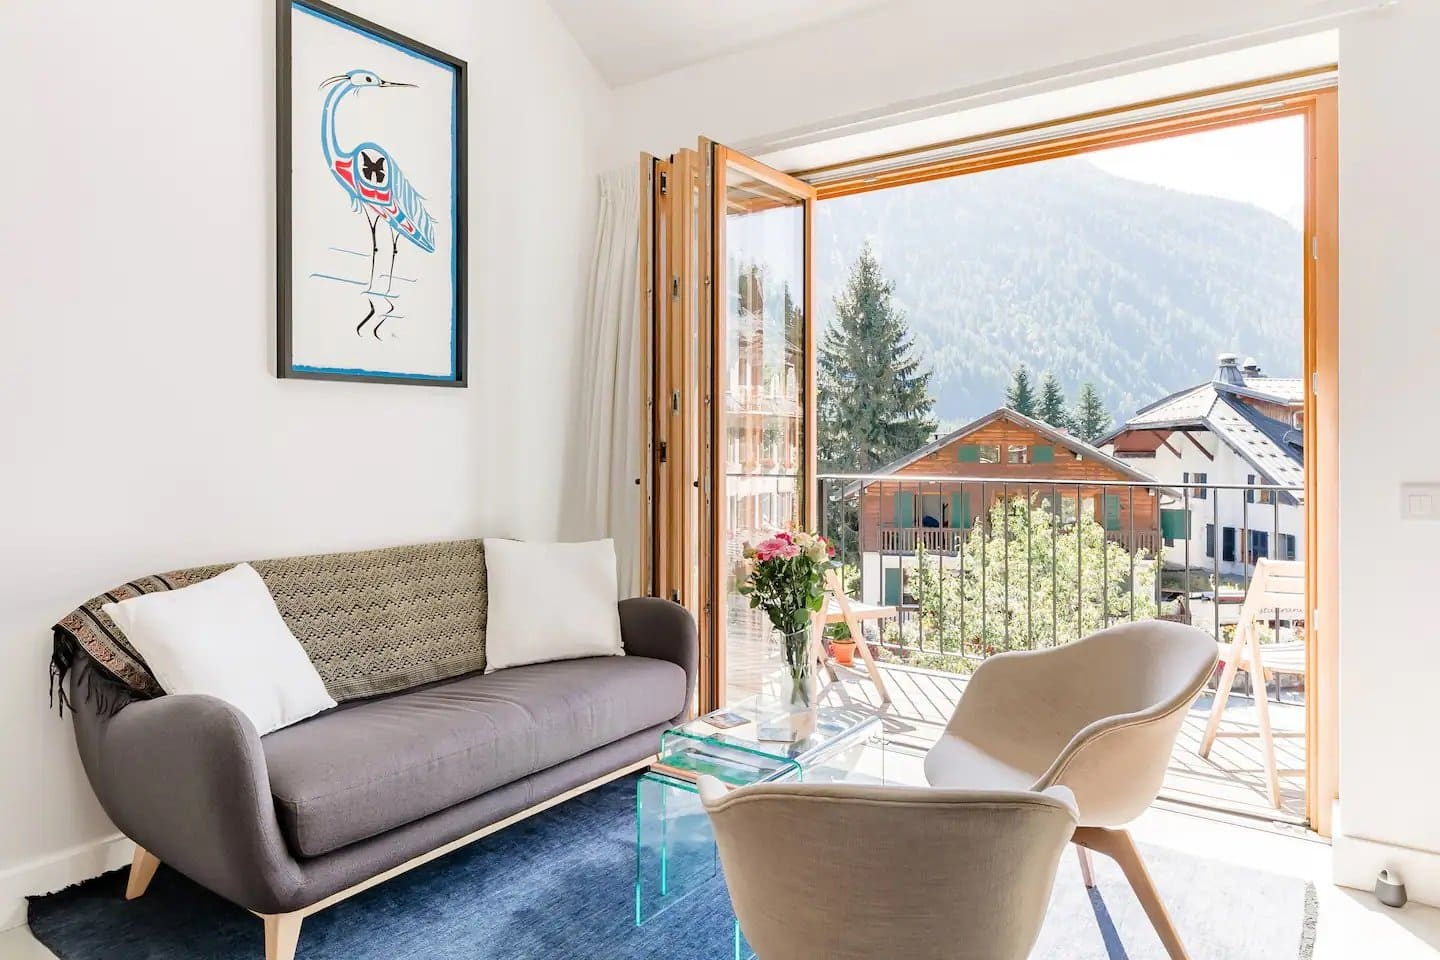 Horizontal photo of the living area of an Air BnB condo in Argentière, France.